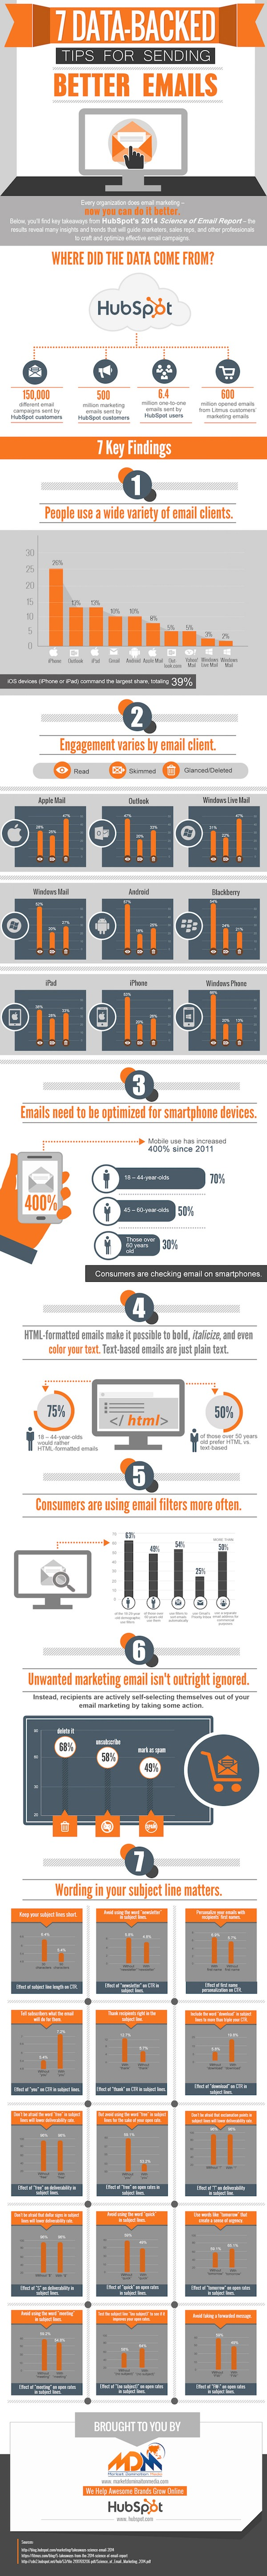 7 Data-Backed Tips for Sending Better Emails [Infographic] - Socially Stacked | The Marketing Technology Alert | Scoop.it